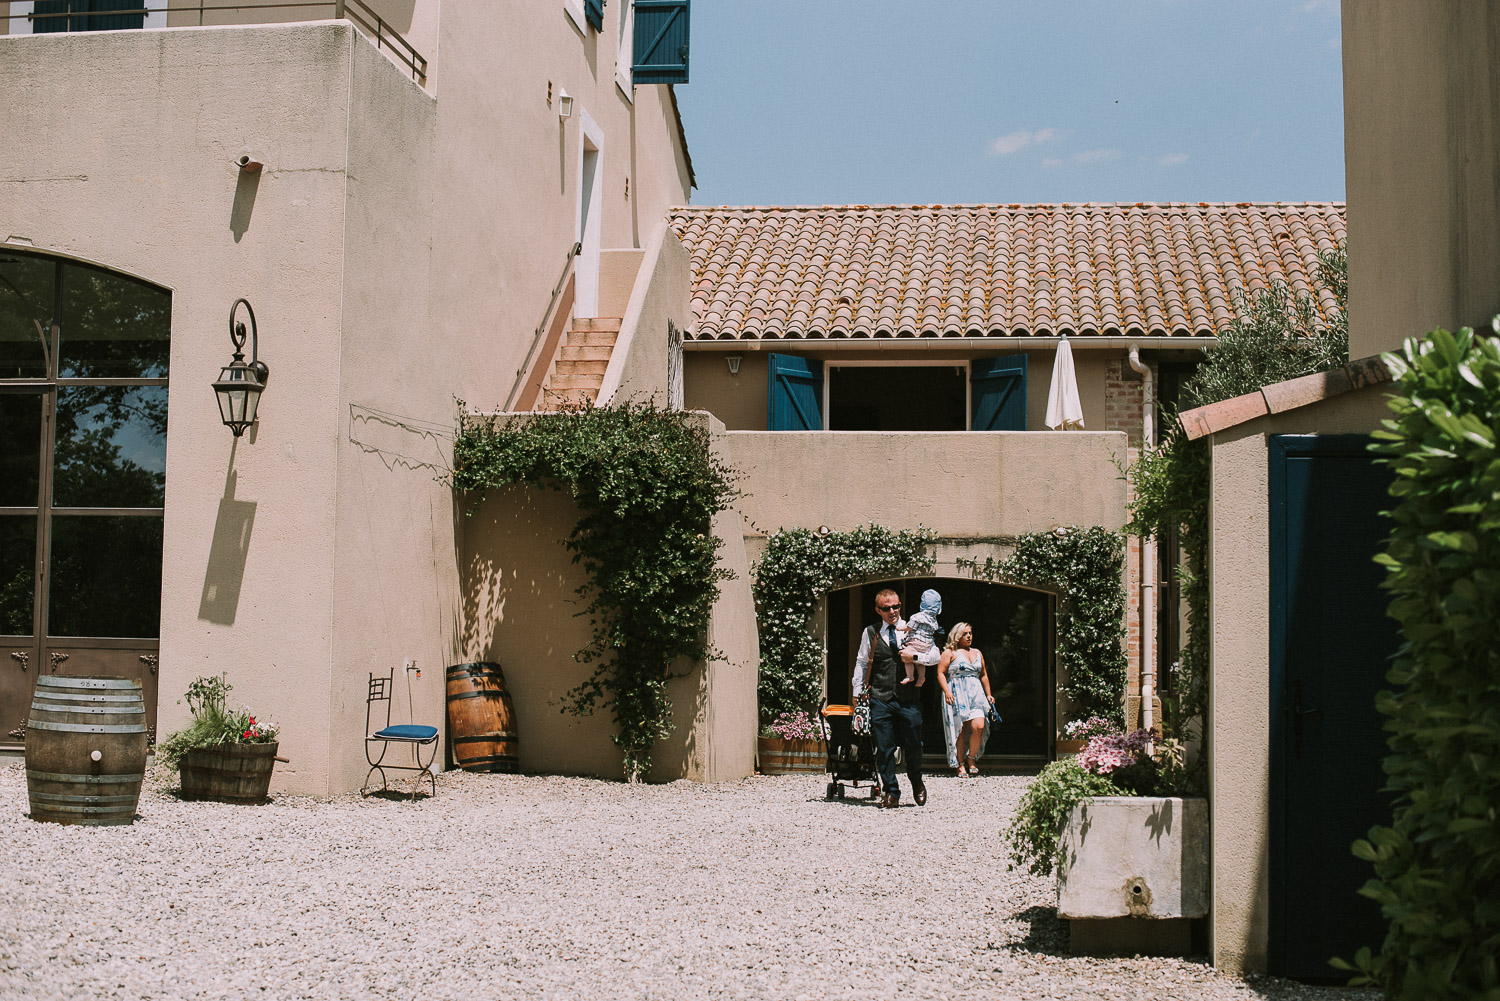 chateau_canet_carcassonne_wedding_katy_webb_photography_france_UK27